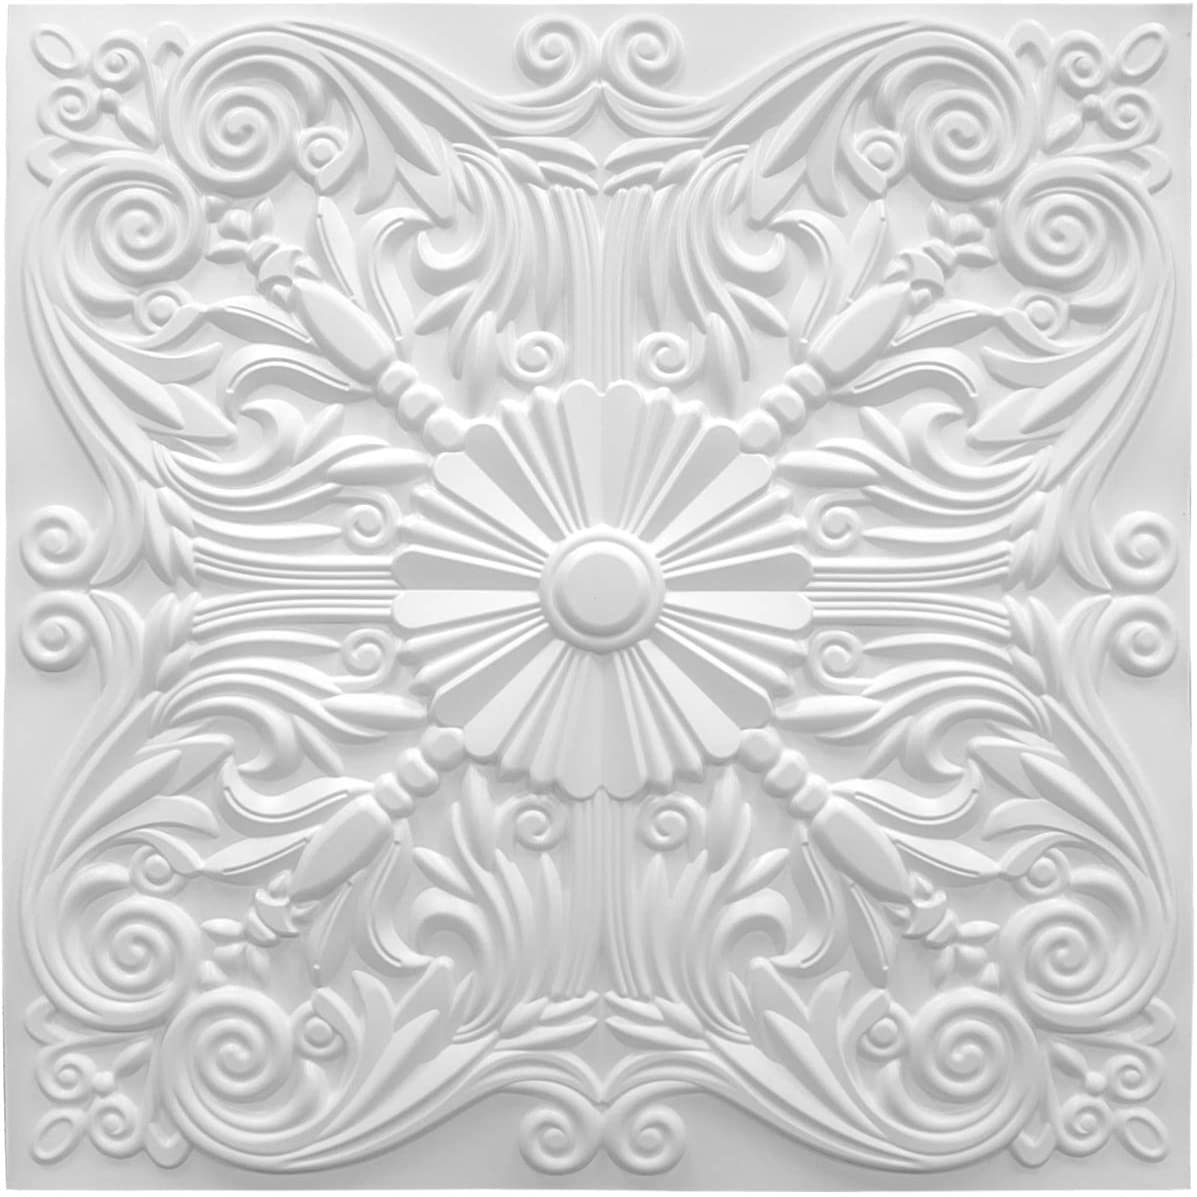 A10904P12 -Decorative Ceiling Tile 2x2 Glue up, Lay in Ceiling Tile 24x24 Pack of 12pcs Spanish Floral in Matt White